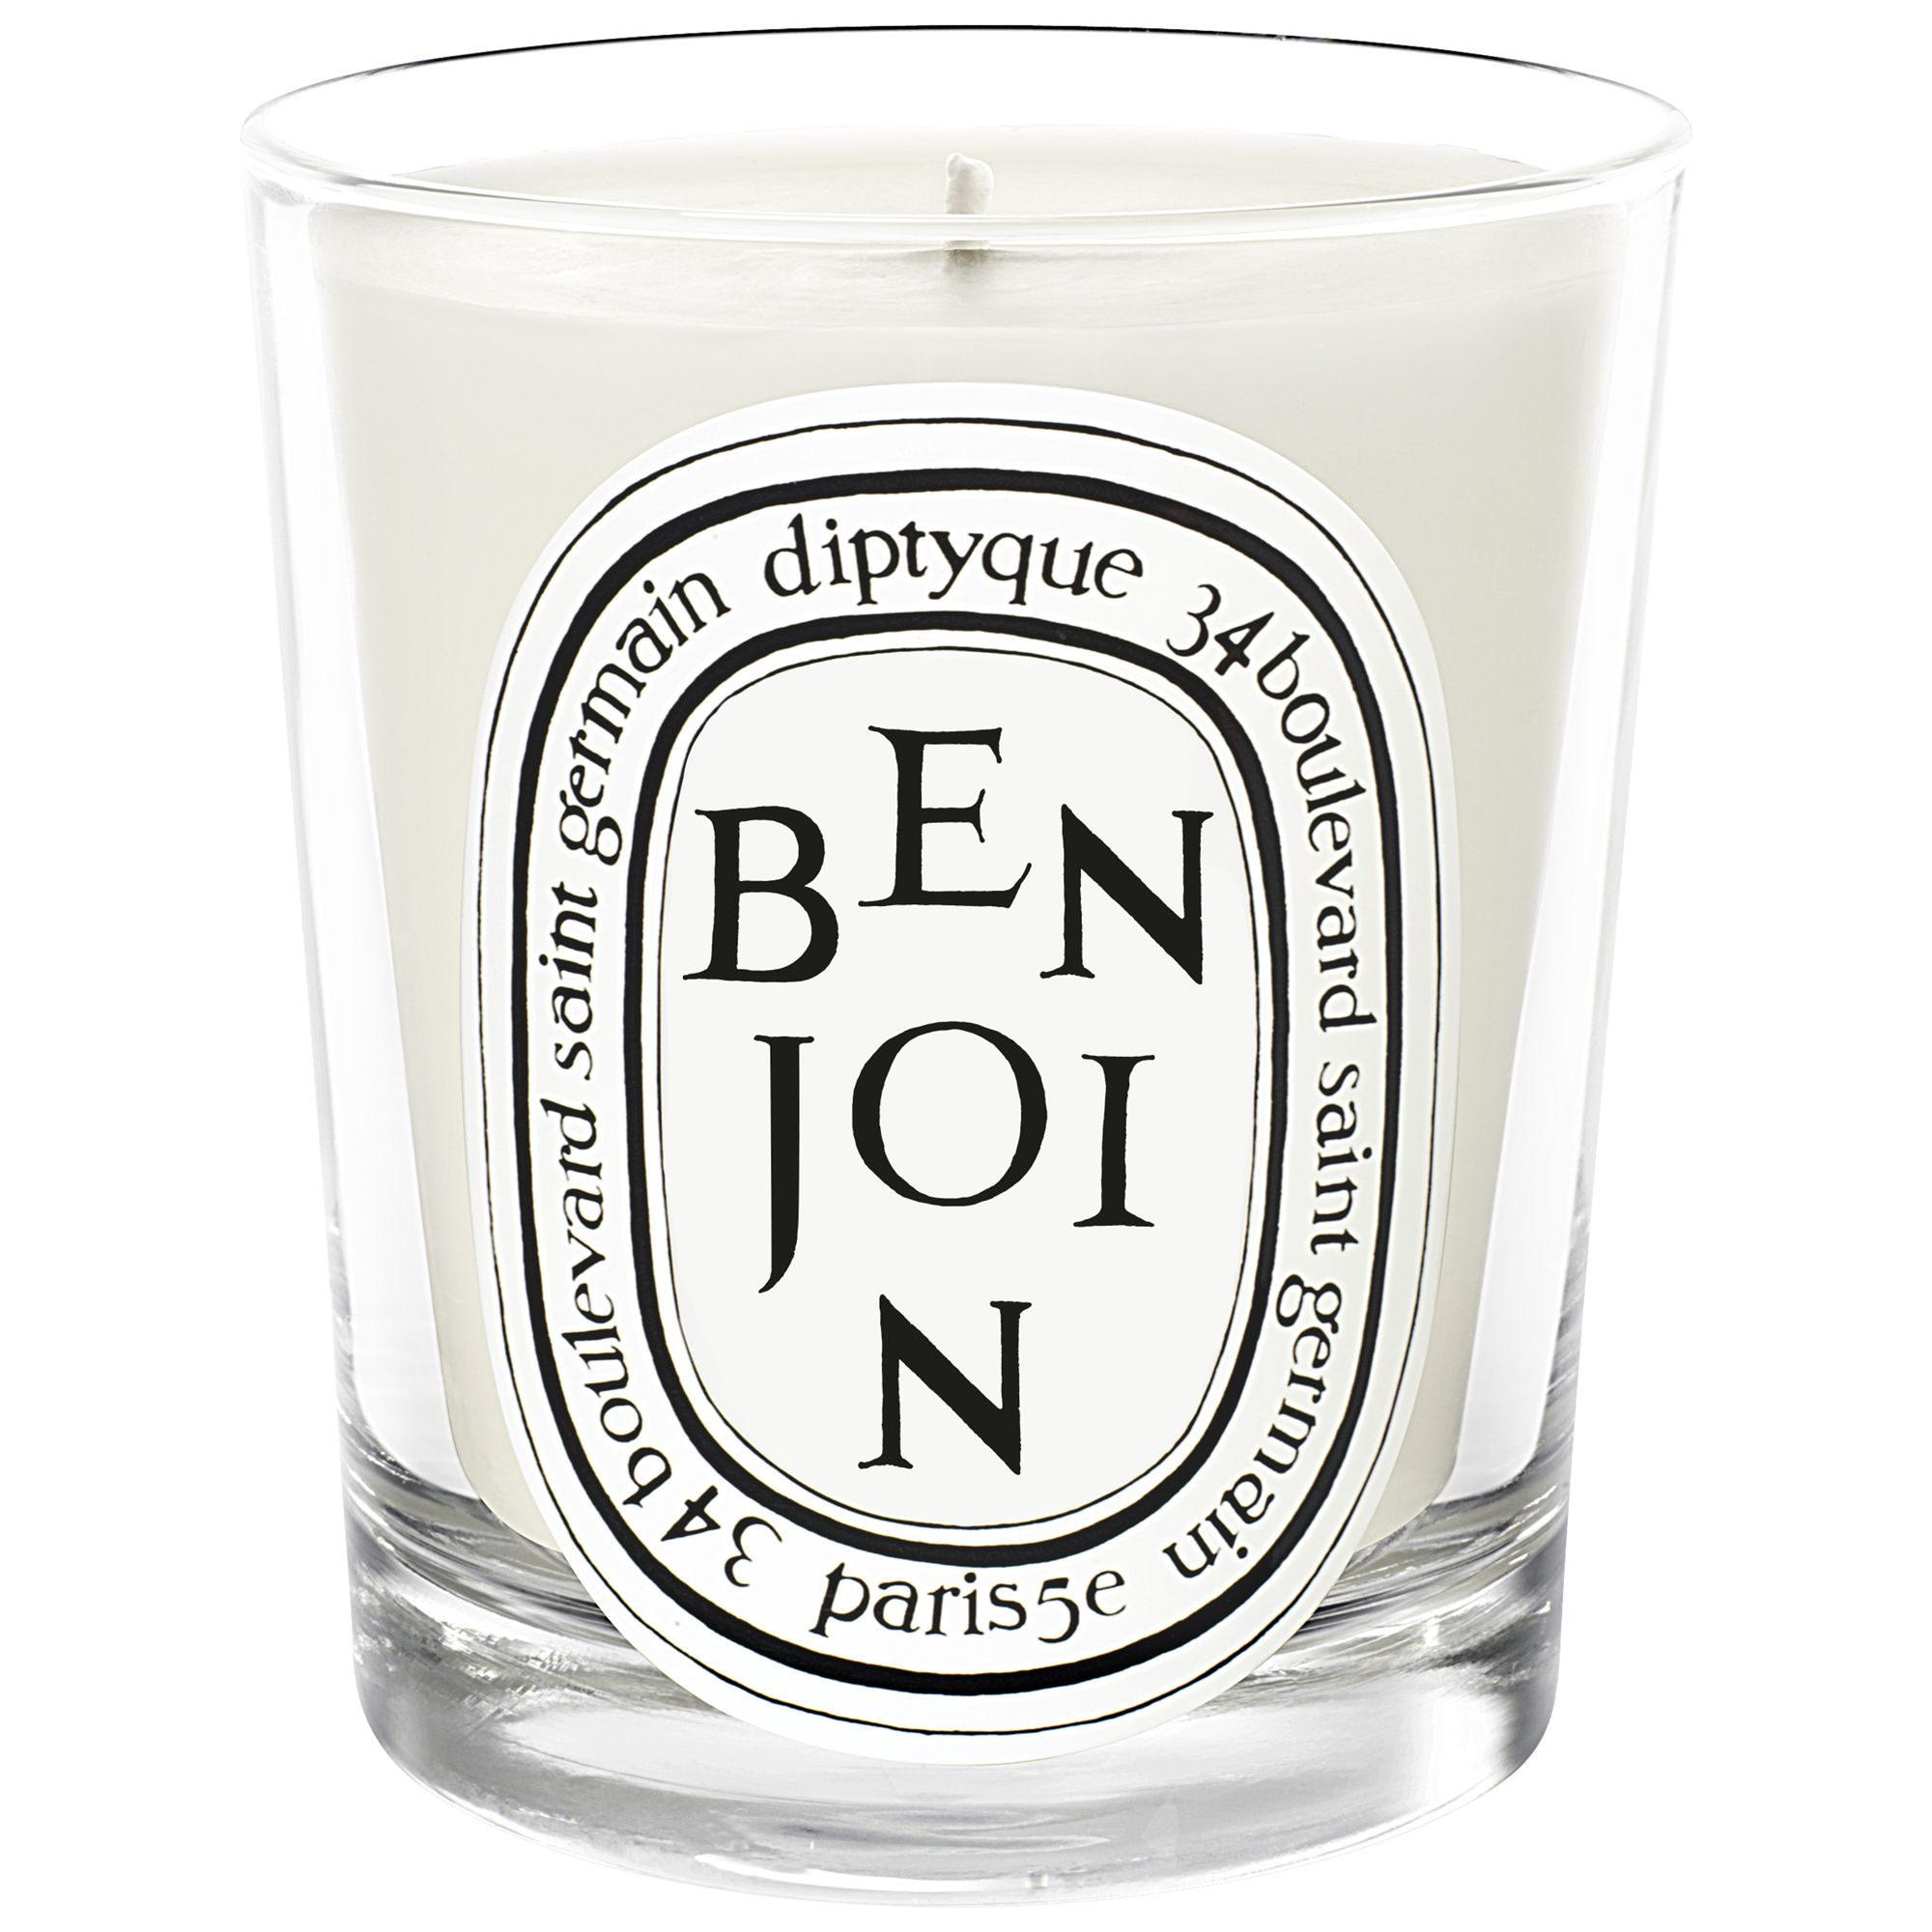 Diptyque Diptyque Benjoin Scented Candle, 190g